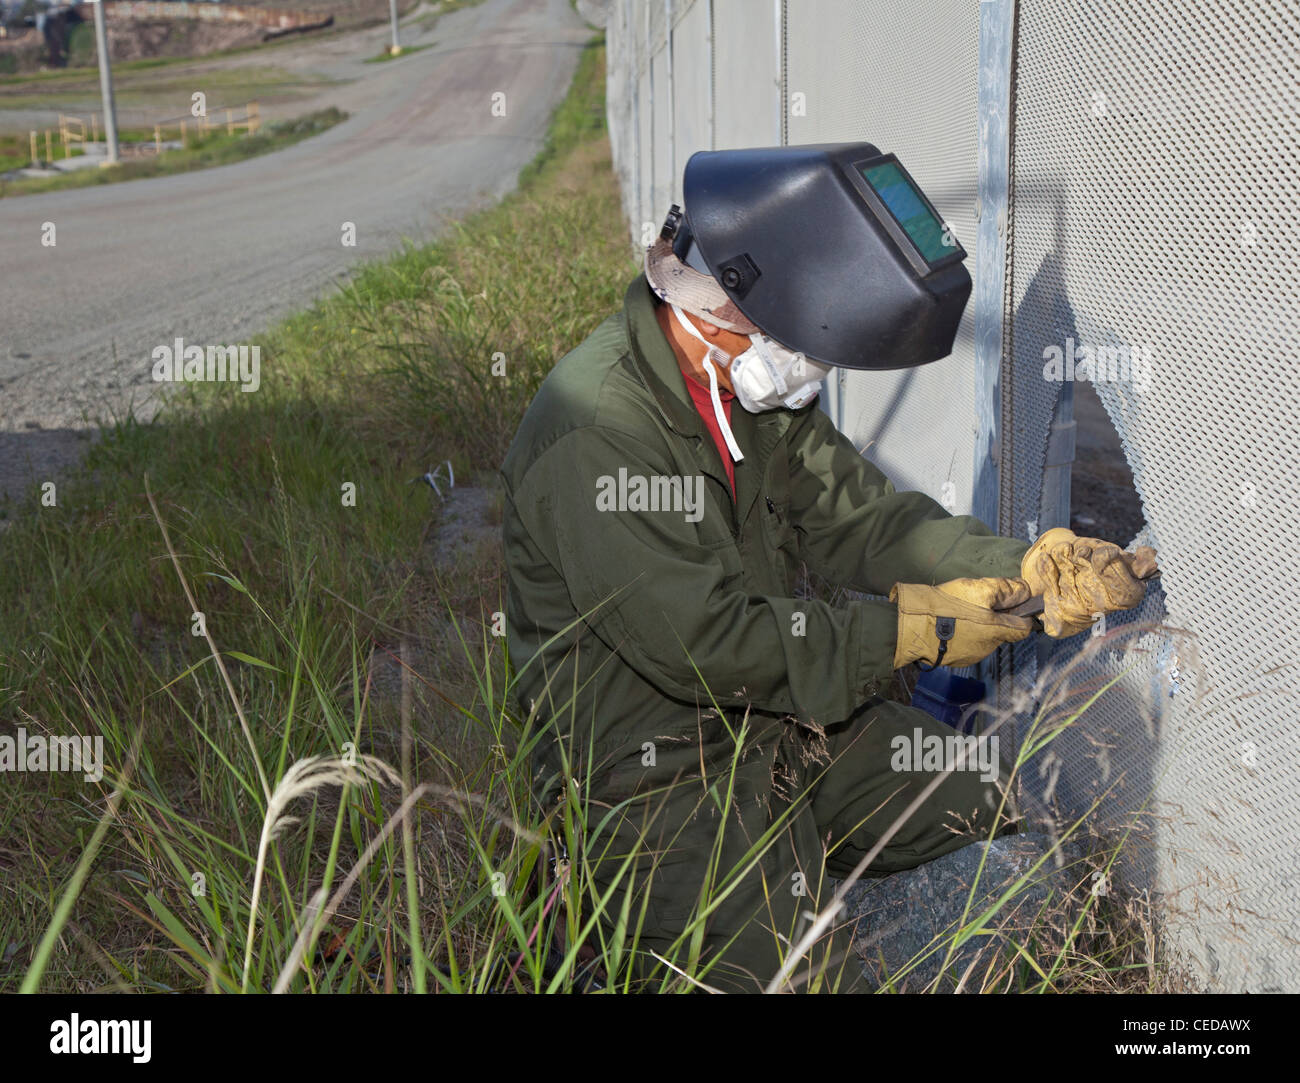 Worker Patches Hole Cut in U.S.-Mexico Border Fence Stock Photo